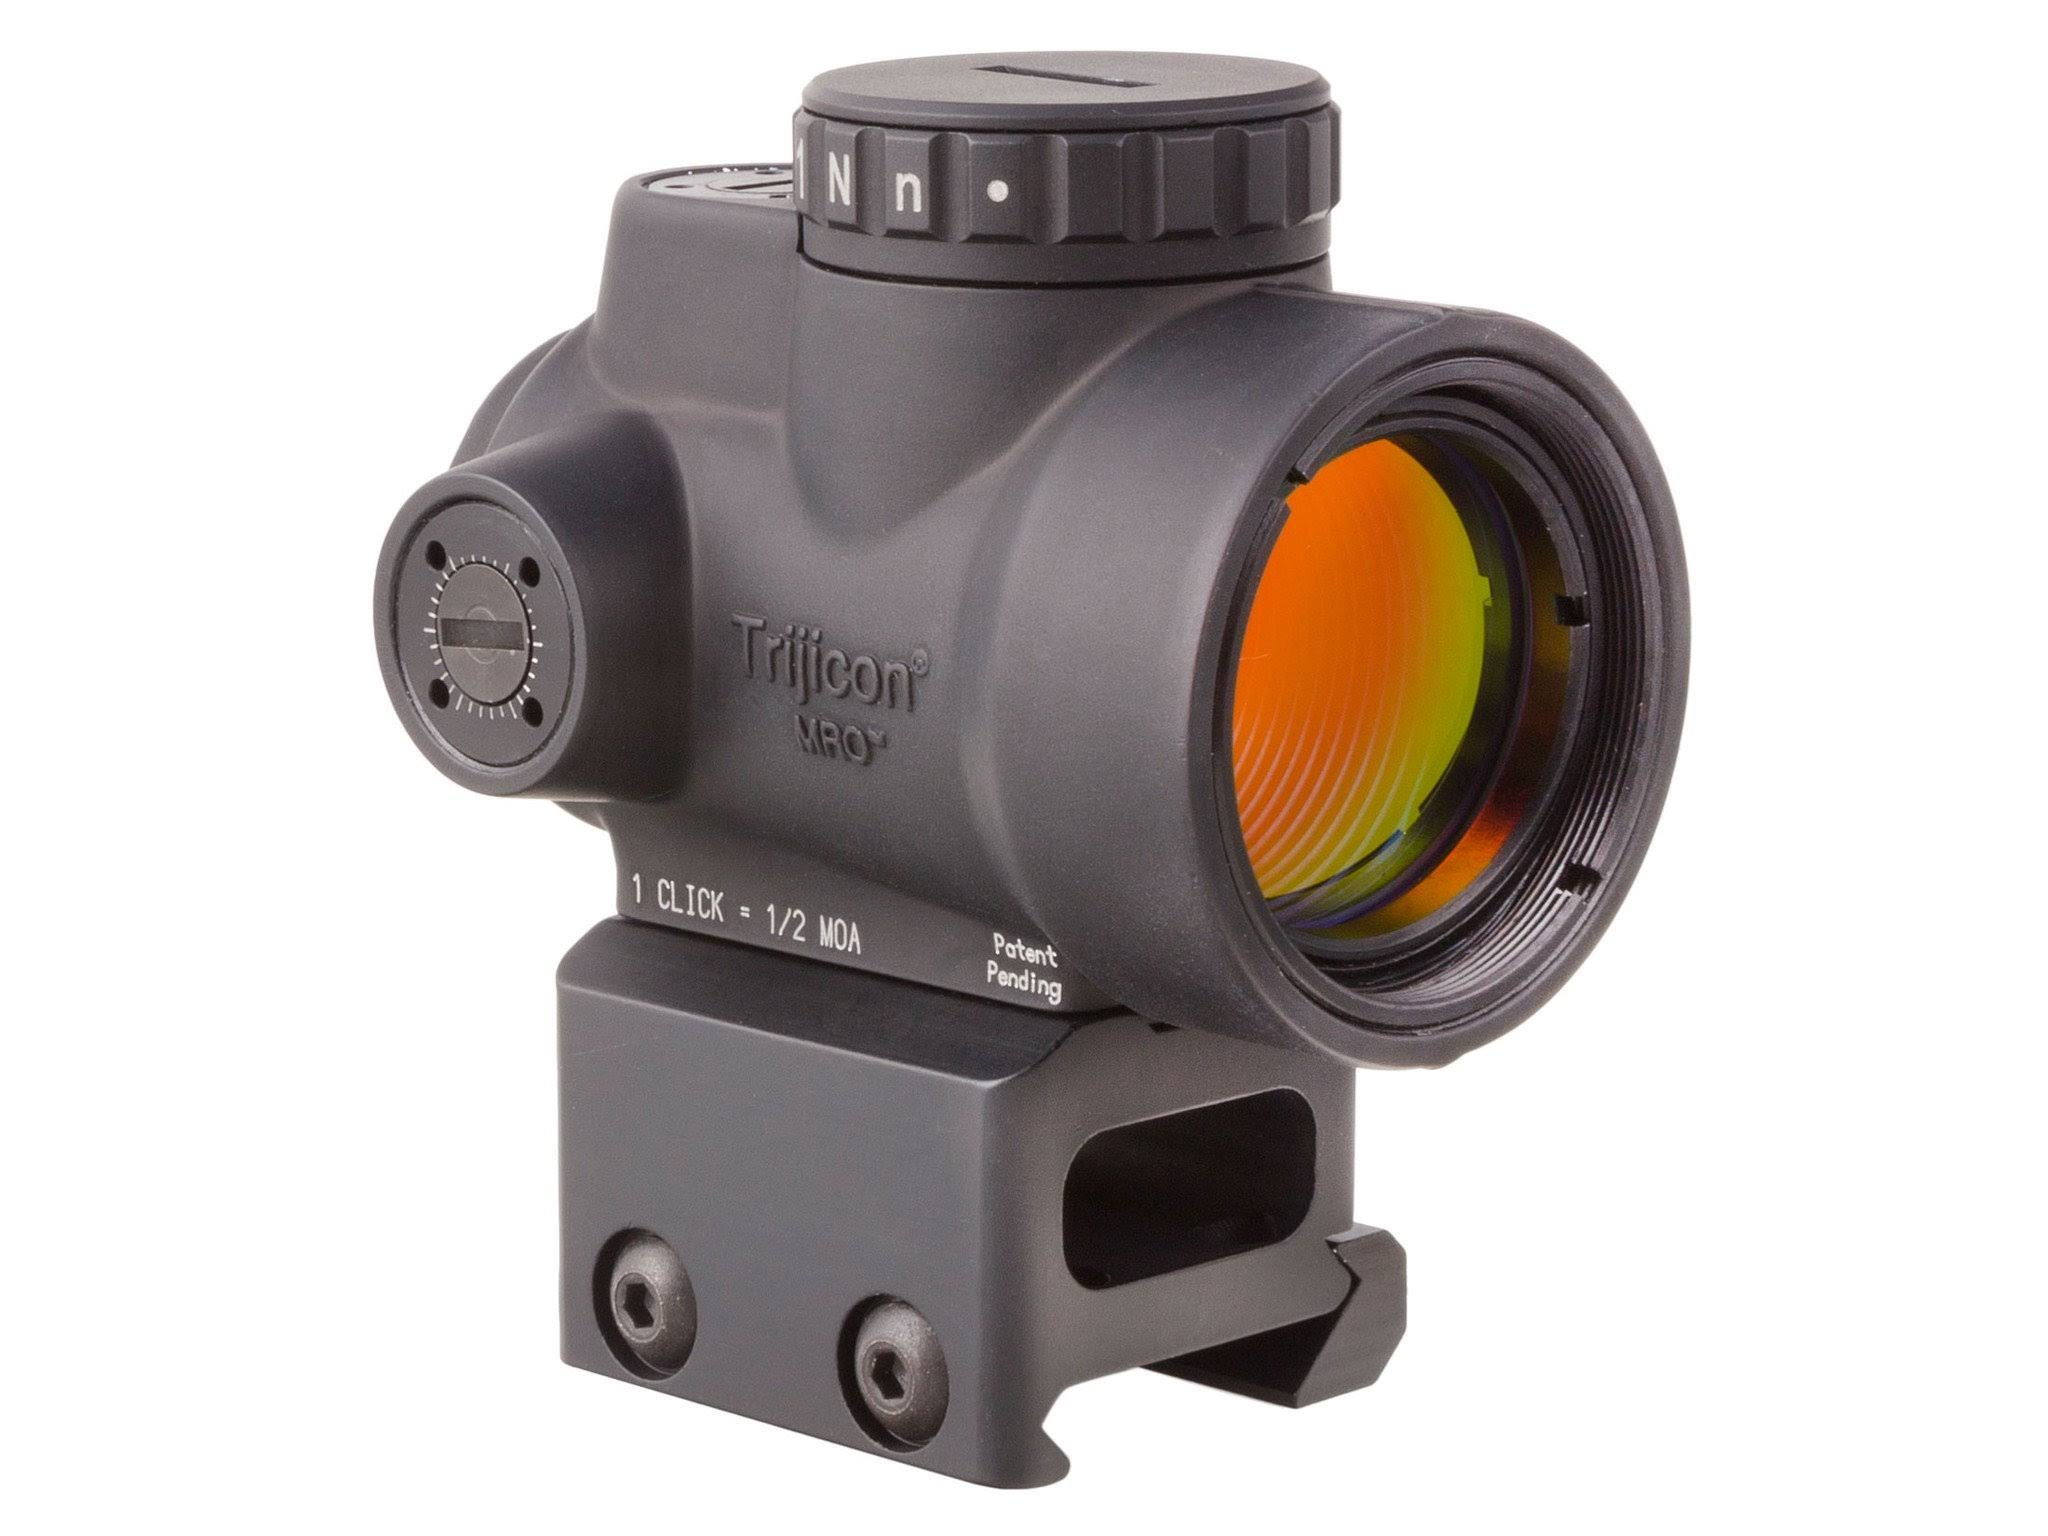 Trijicon MRO Adjustable Sight - 1mm x 25mm, Red Dot